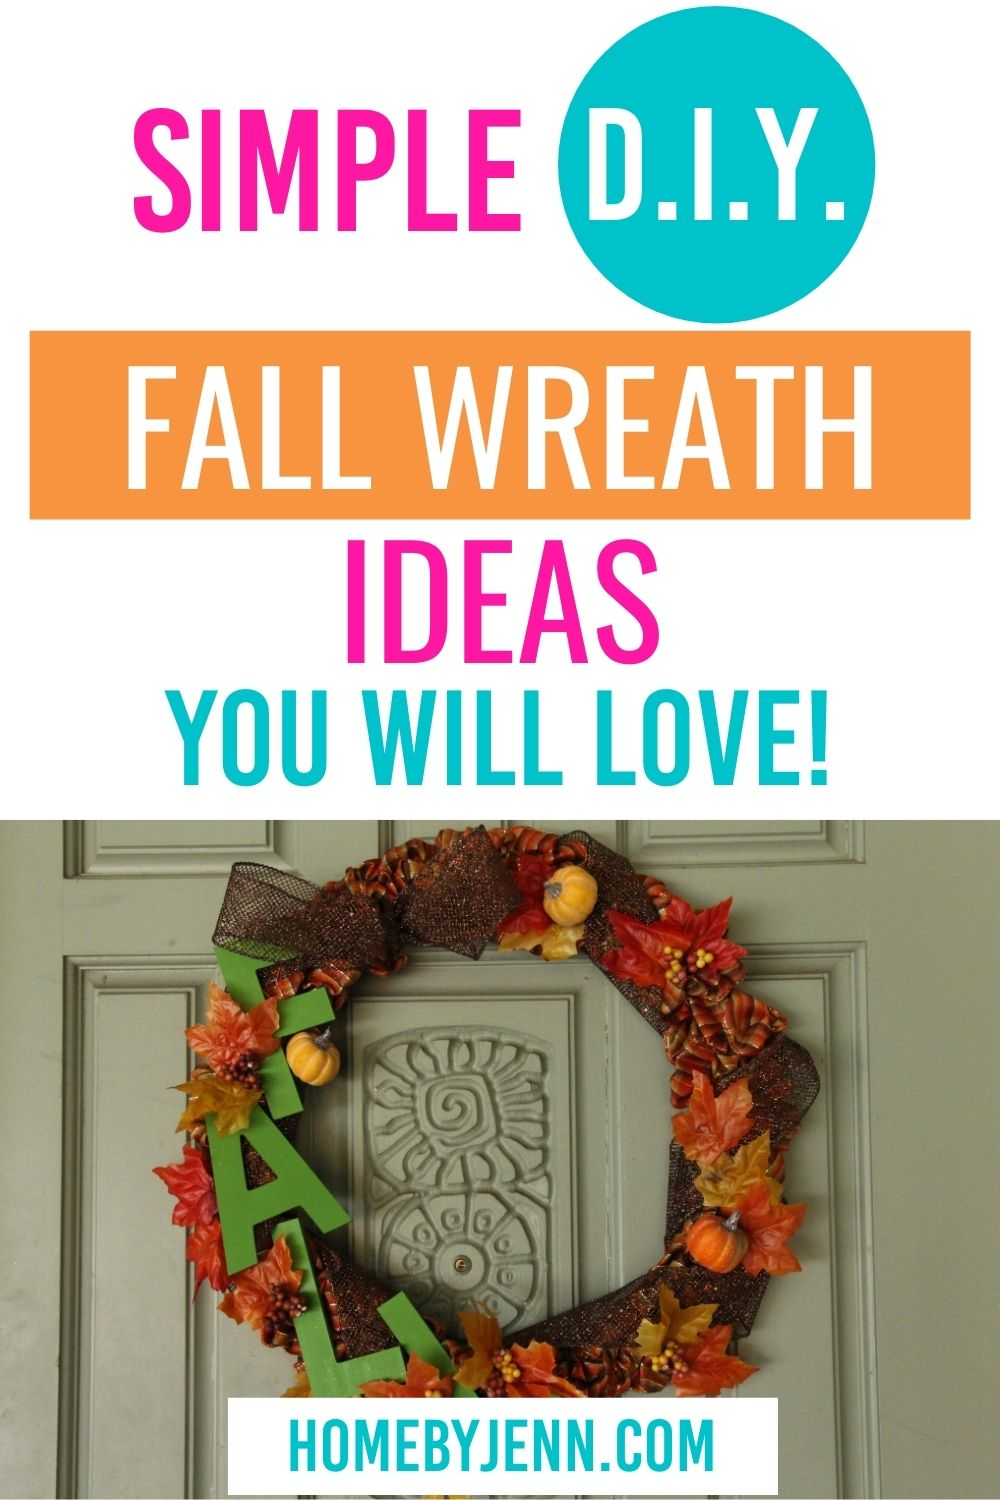 Traditionally, wreaths have always symbolized honor and victory. I'm going to share simple DIY fall wreath ideas that you'll want to start making today. #fall #wreath #tutorial #howto #decorate #easy via @homebyjenn